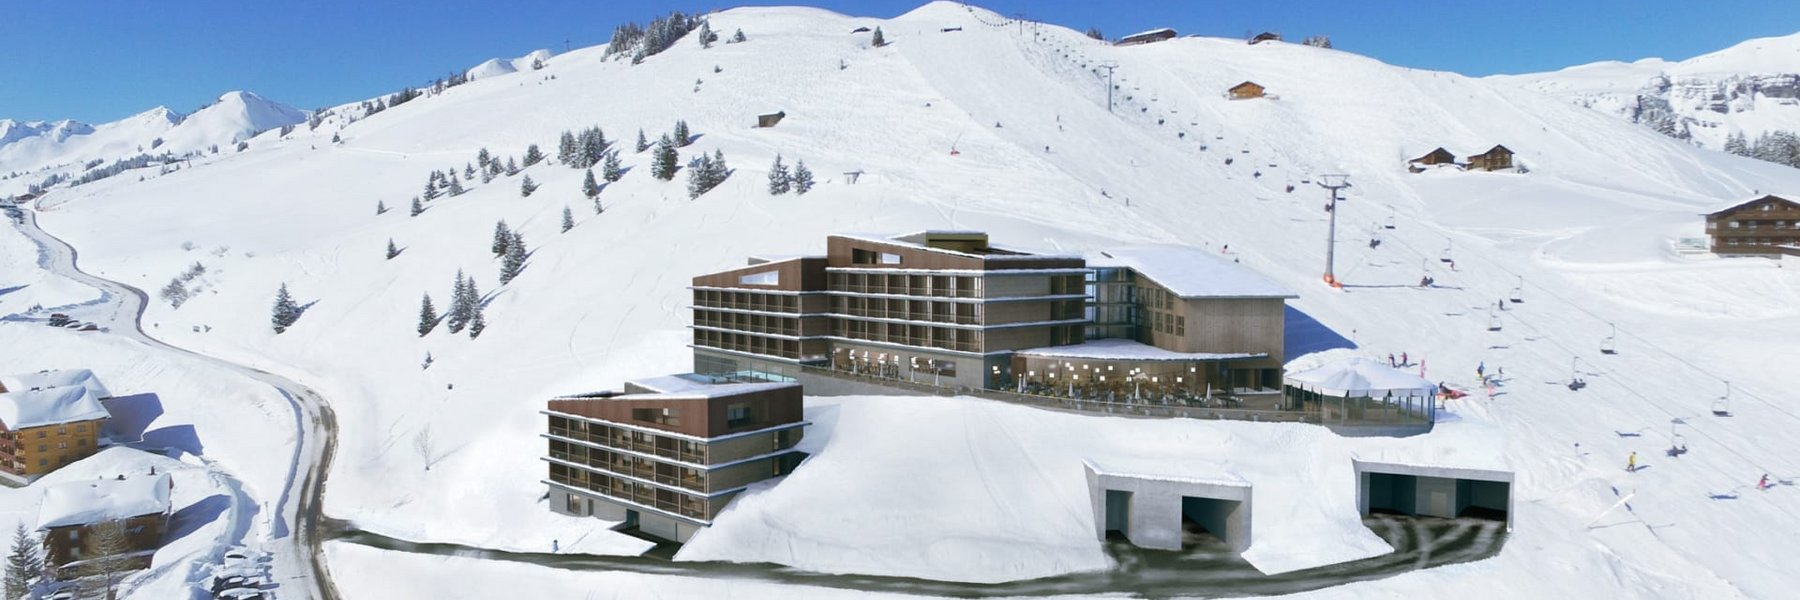 Alpenstern Panoramahotel